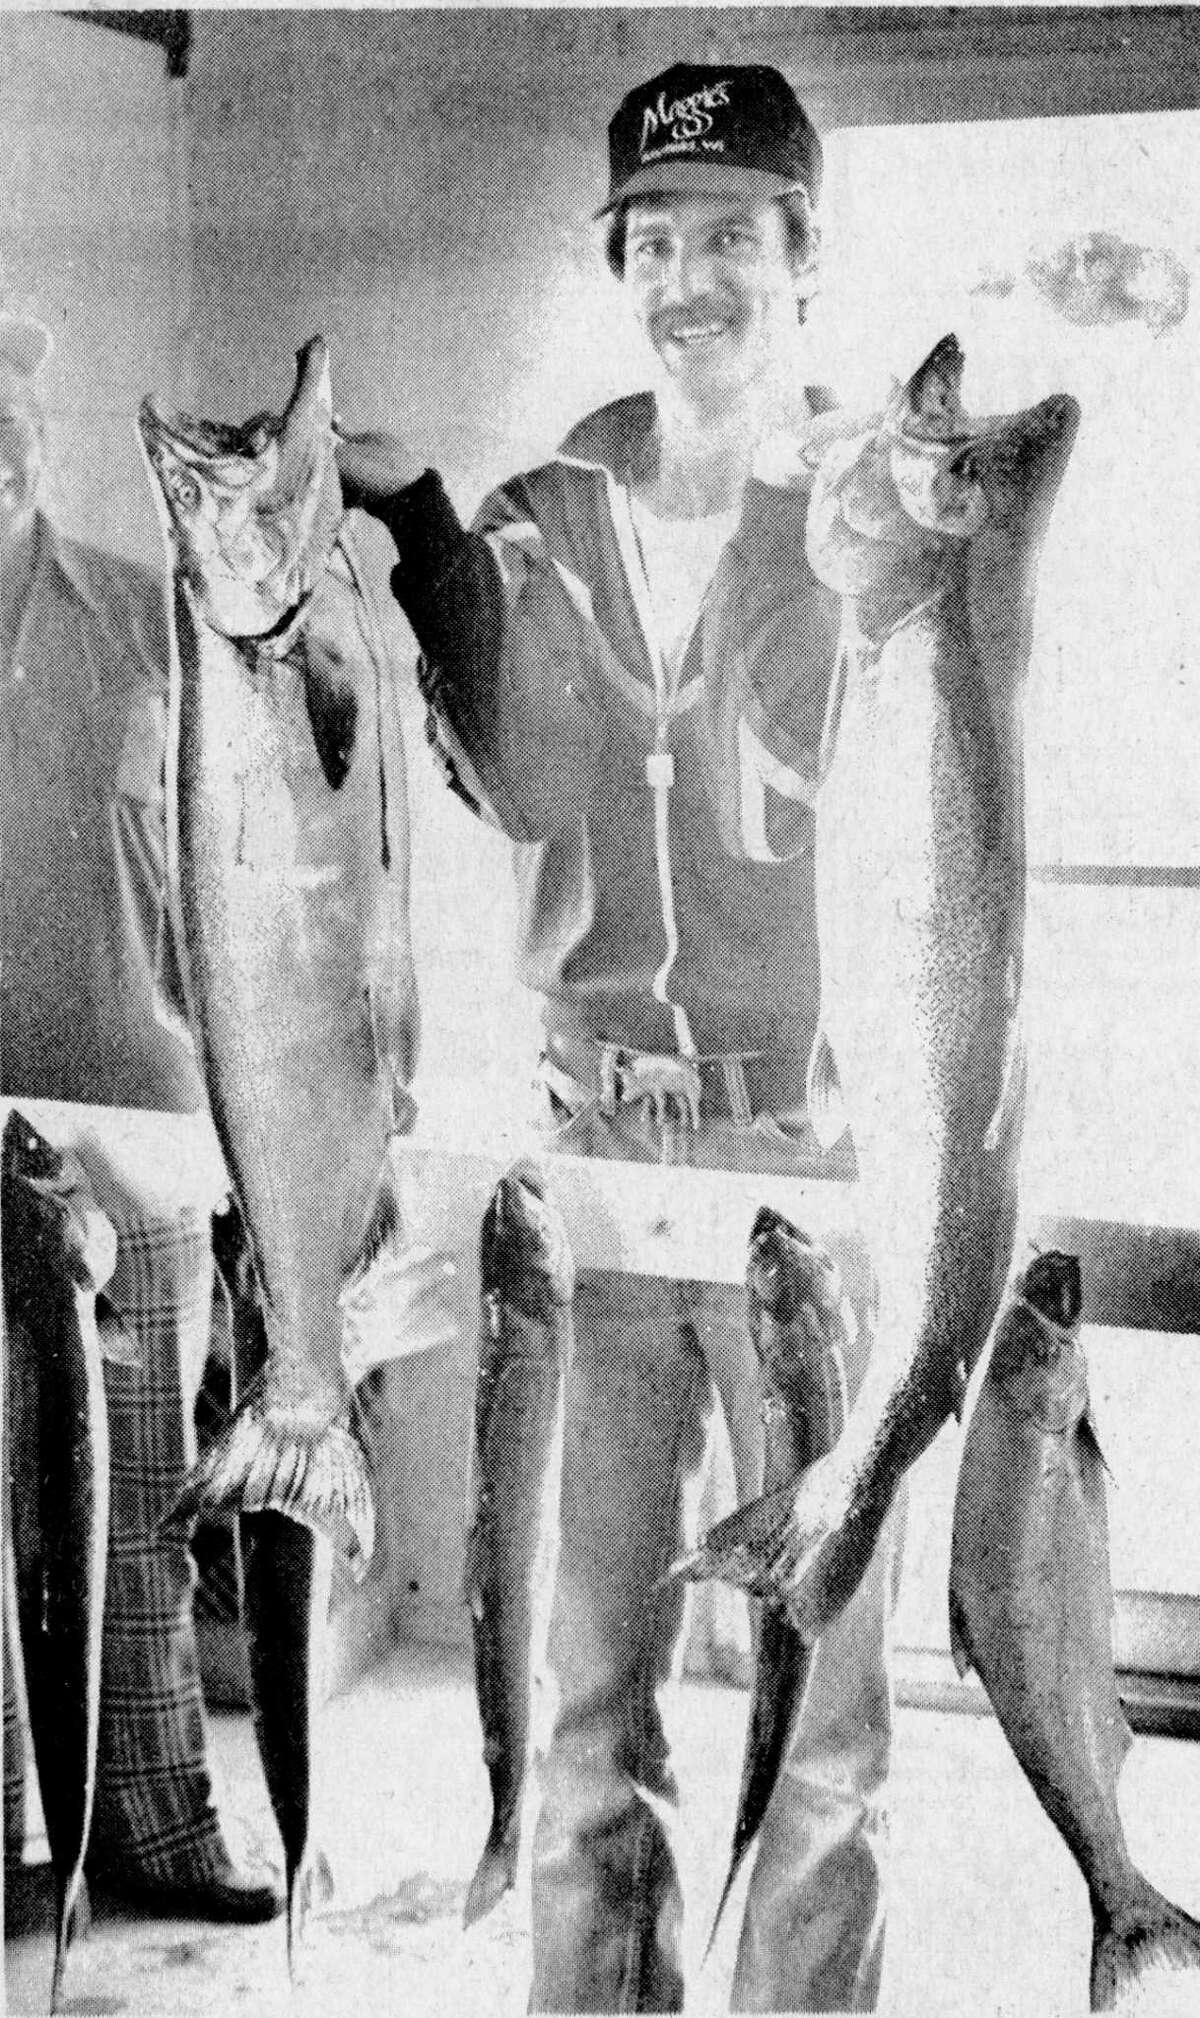 An All-Star pitcher lands an All-Star catch. Jack Morris, ace right-hander for the Detroit Tigers and the starting pitcher for the American League in the All-Star game this year, proudly holds two king Salmon he caught fishing off Manistee's port yesterday afternoon. The photo was published in the News Advocate Aug. 21, 1981.(Manistee County Historical Museum photo)